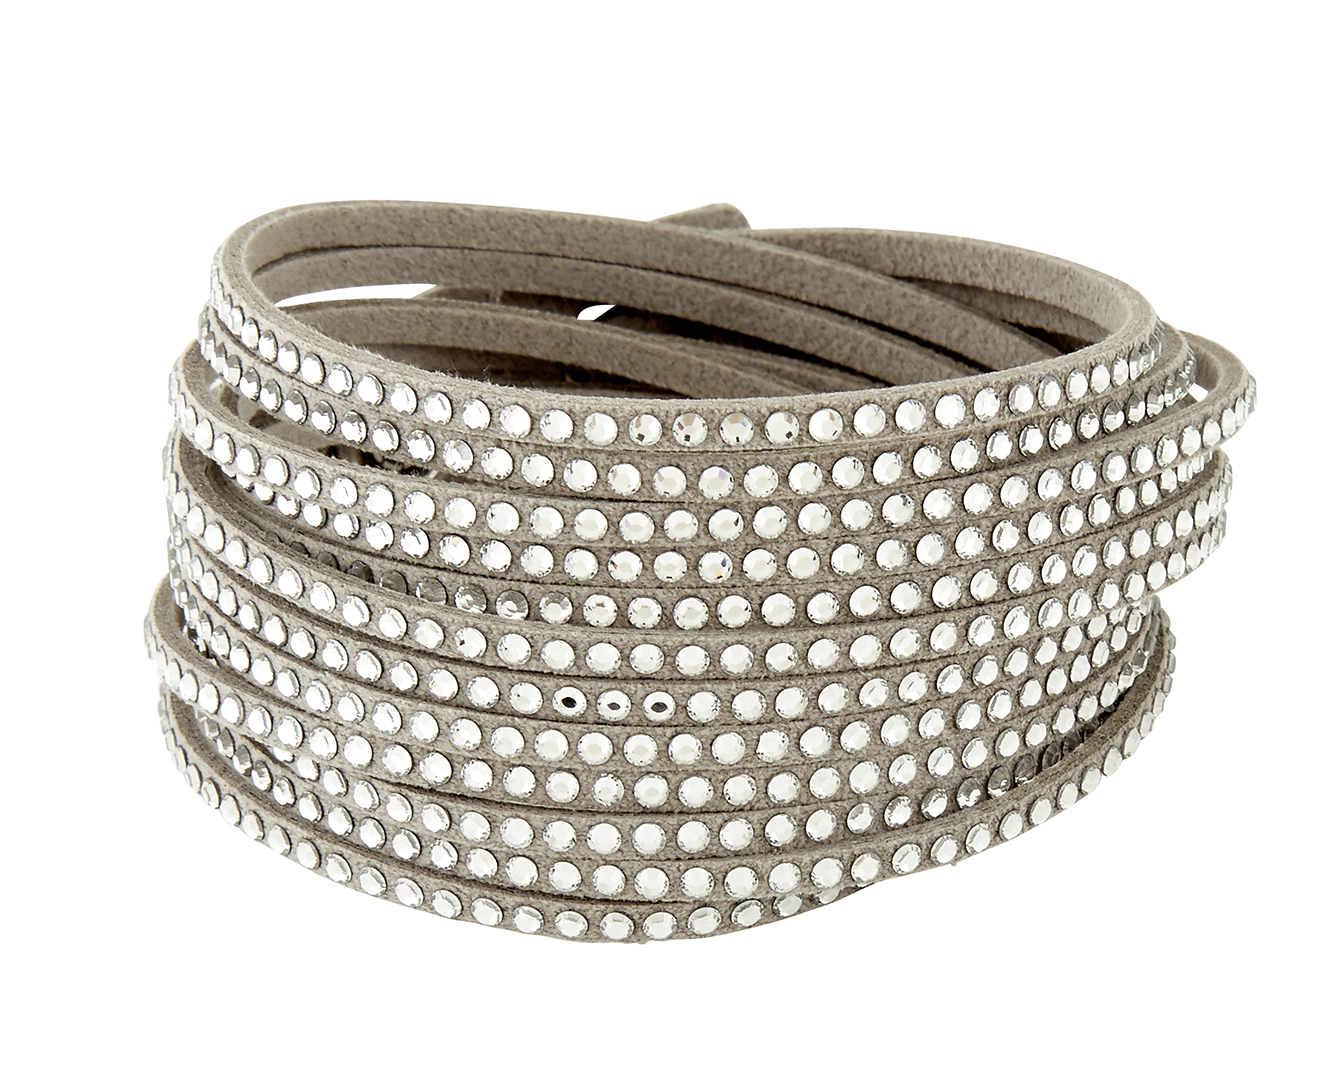 Luxury Beads Chain Bracelet Bangles Crystals From